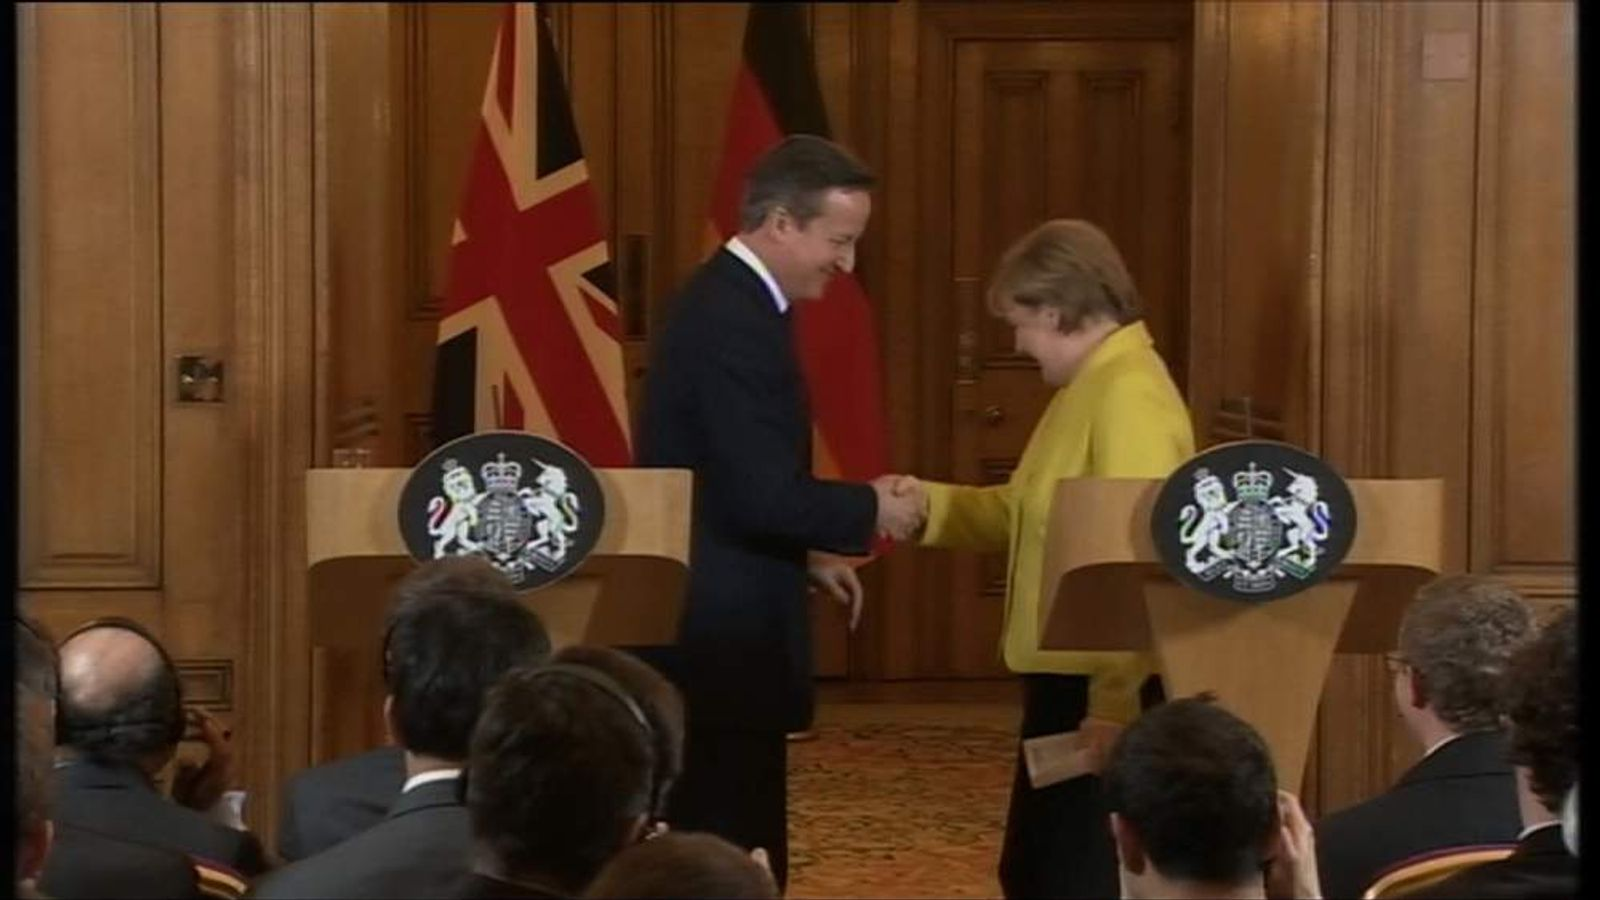 Cameron and Merkel shake hands after Downing Street news conference